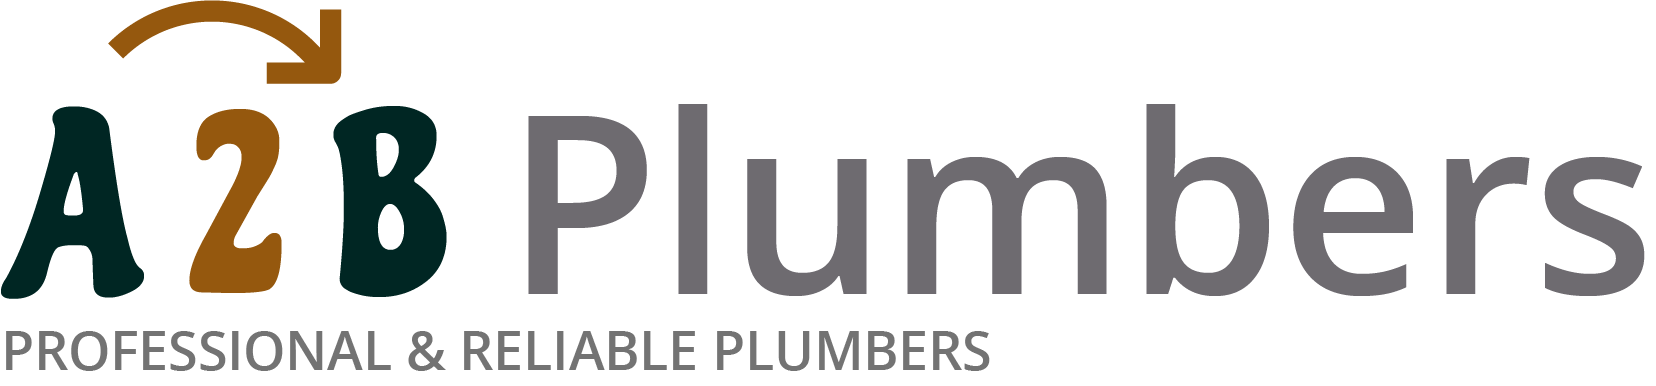 If you need a boiler installed, a radiator repaired or a leaking tap fixed, call us now - we provide services for properties in Dundee and the local area.